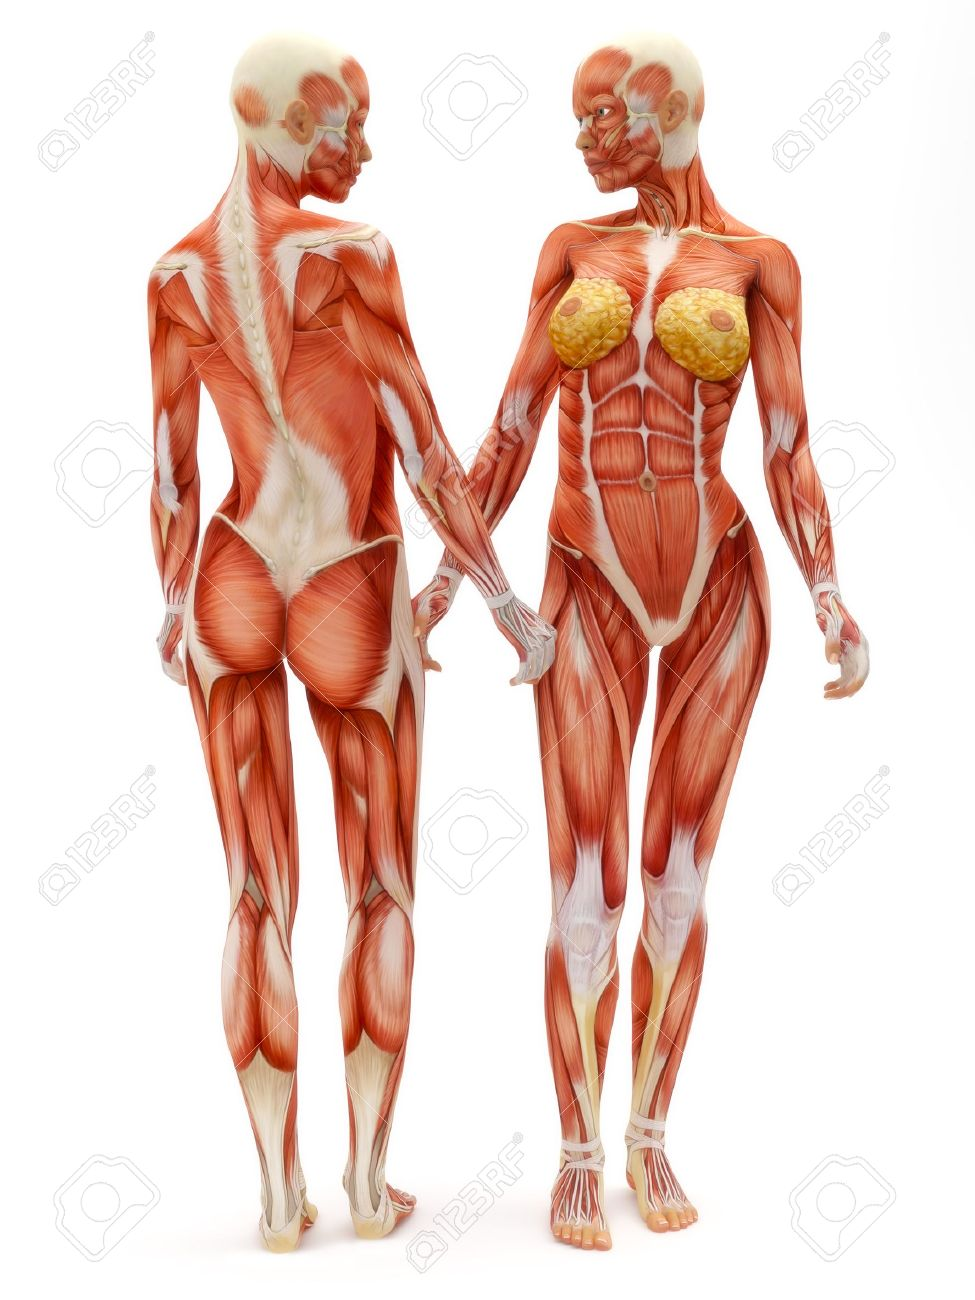 Female Musculoskeletal System Front And Back Isolated On A White ...